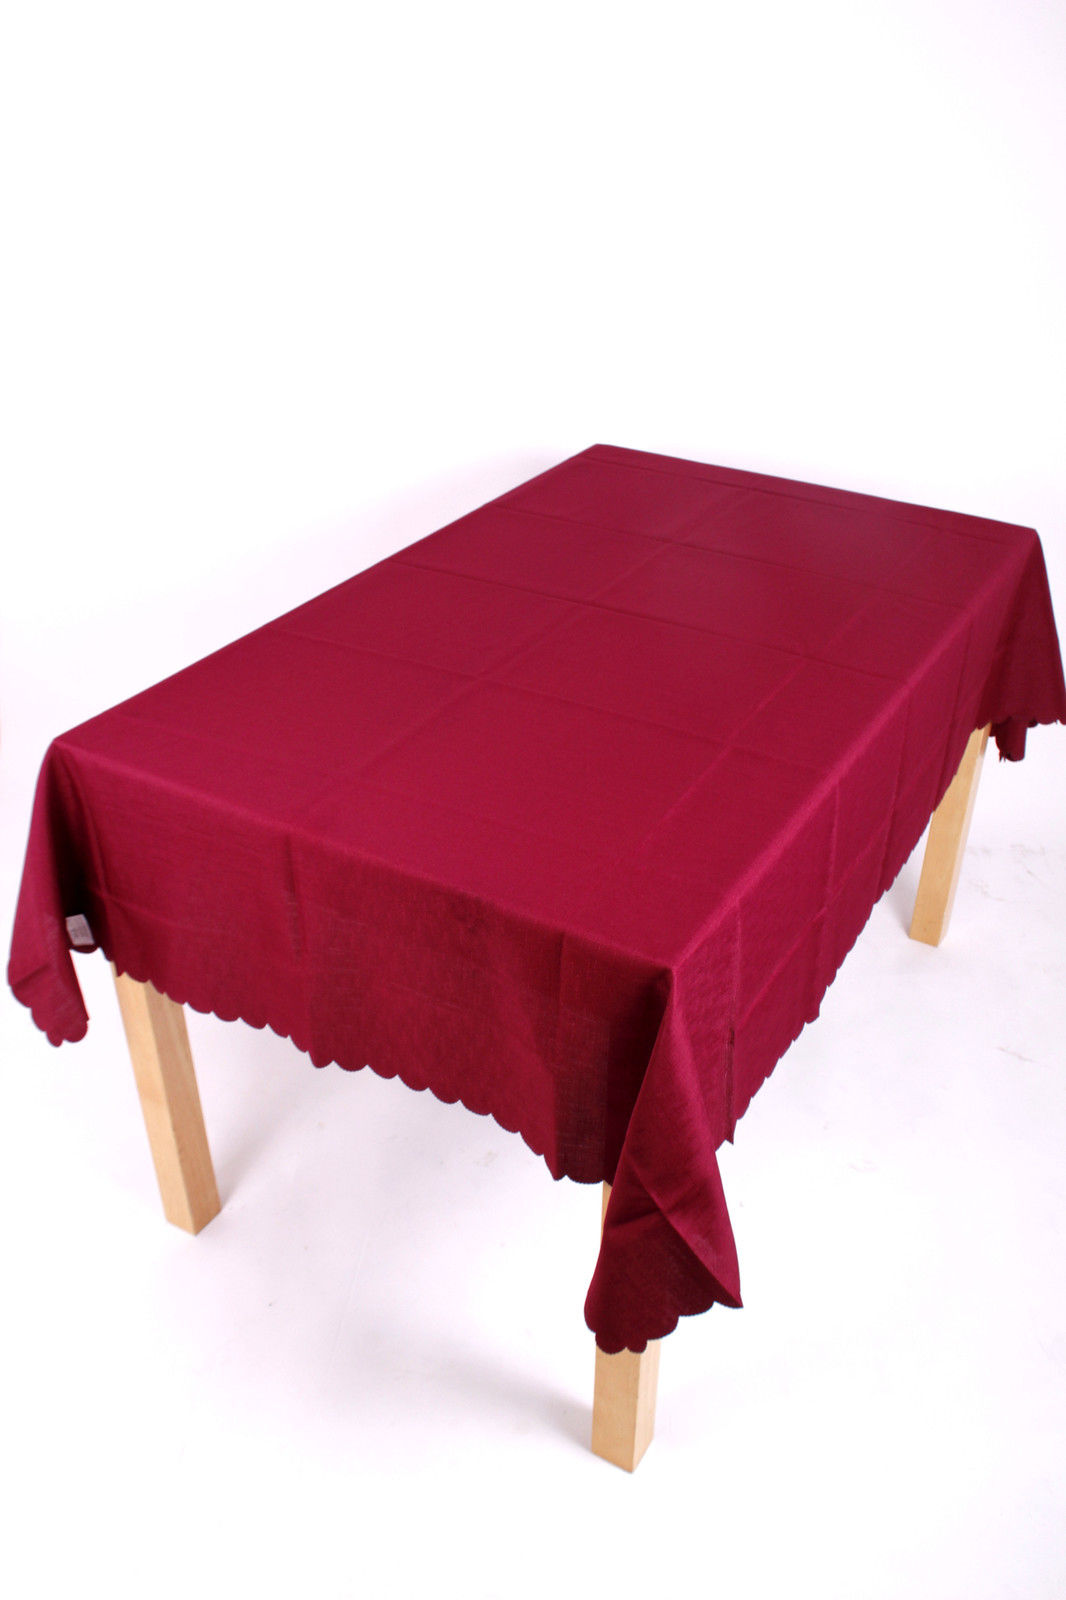 Shell Tablecloth Burgundy 137x178cm Oval